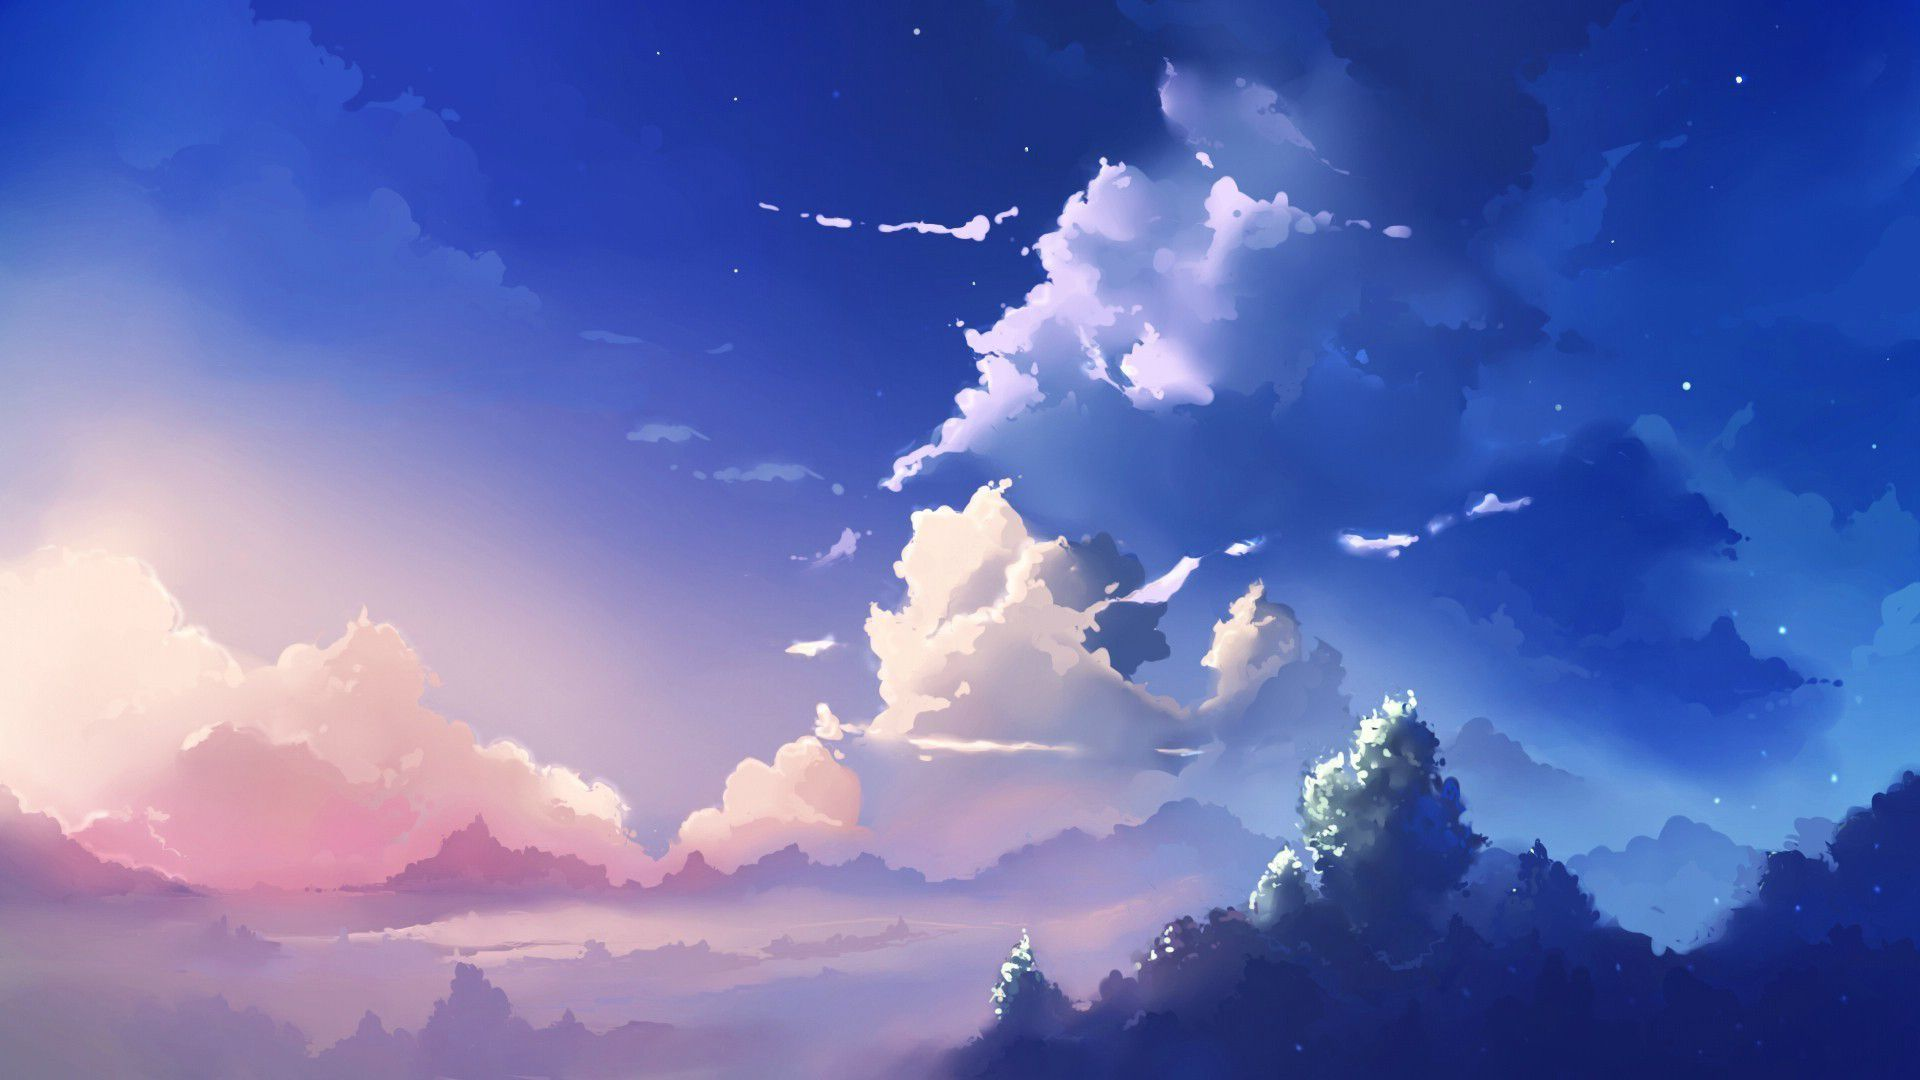 Sky Wallpapers HD Awan, Pemandangan, Pemandangan anime